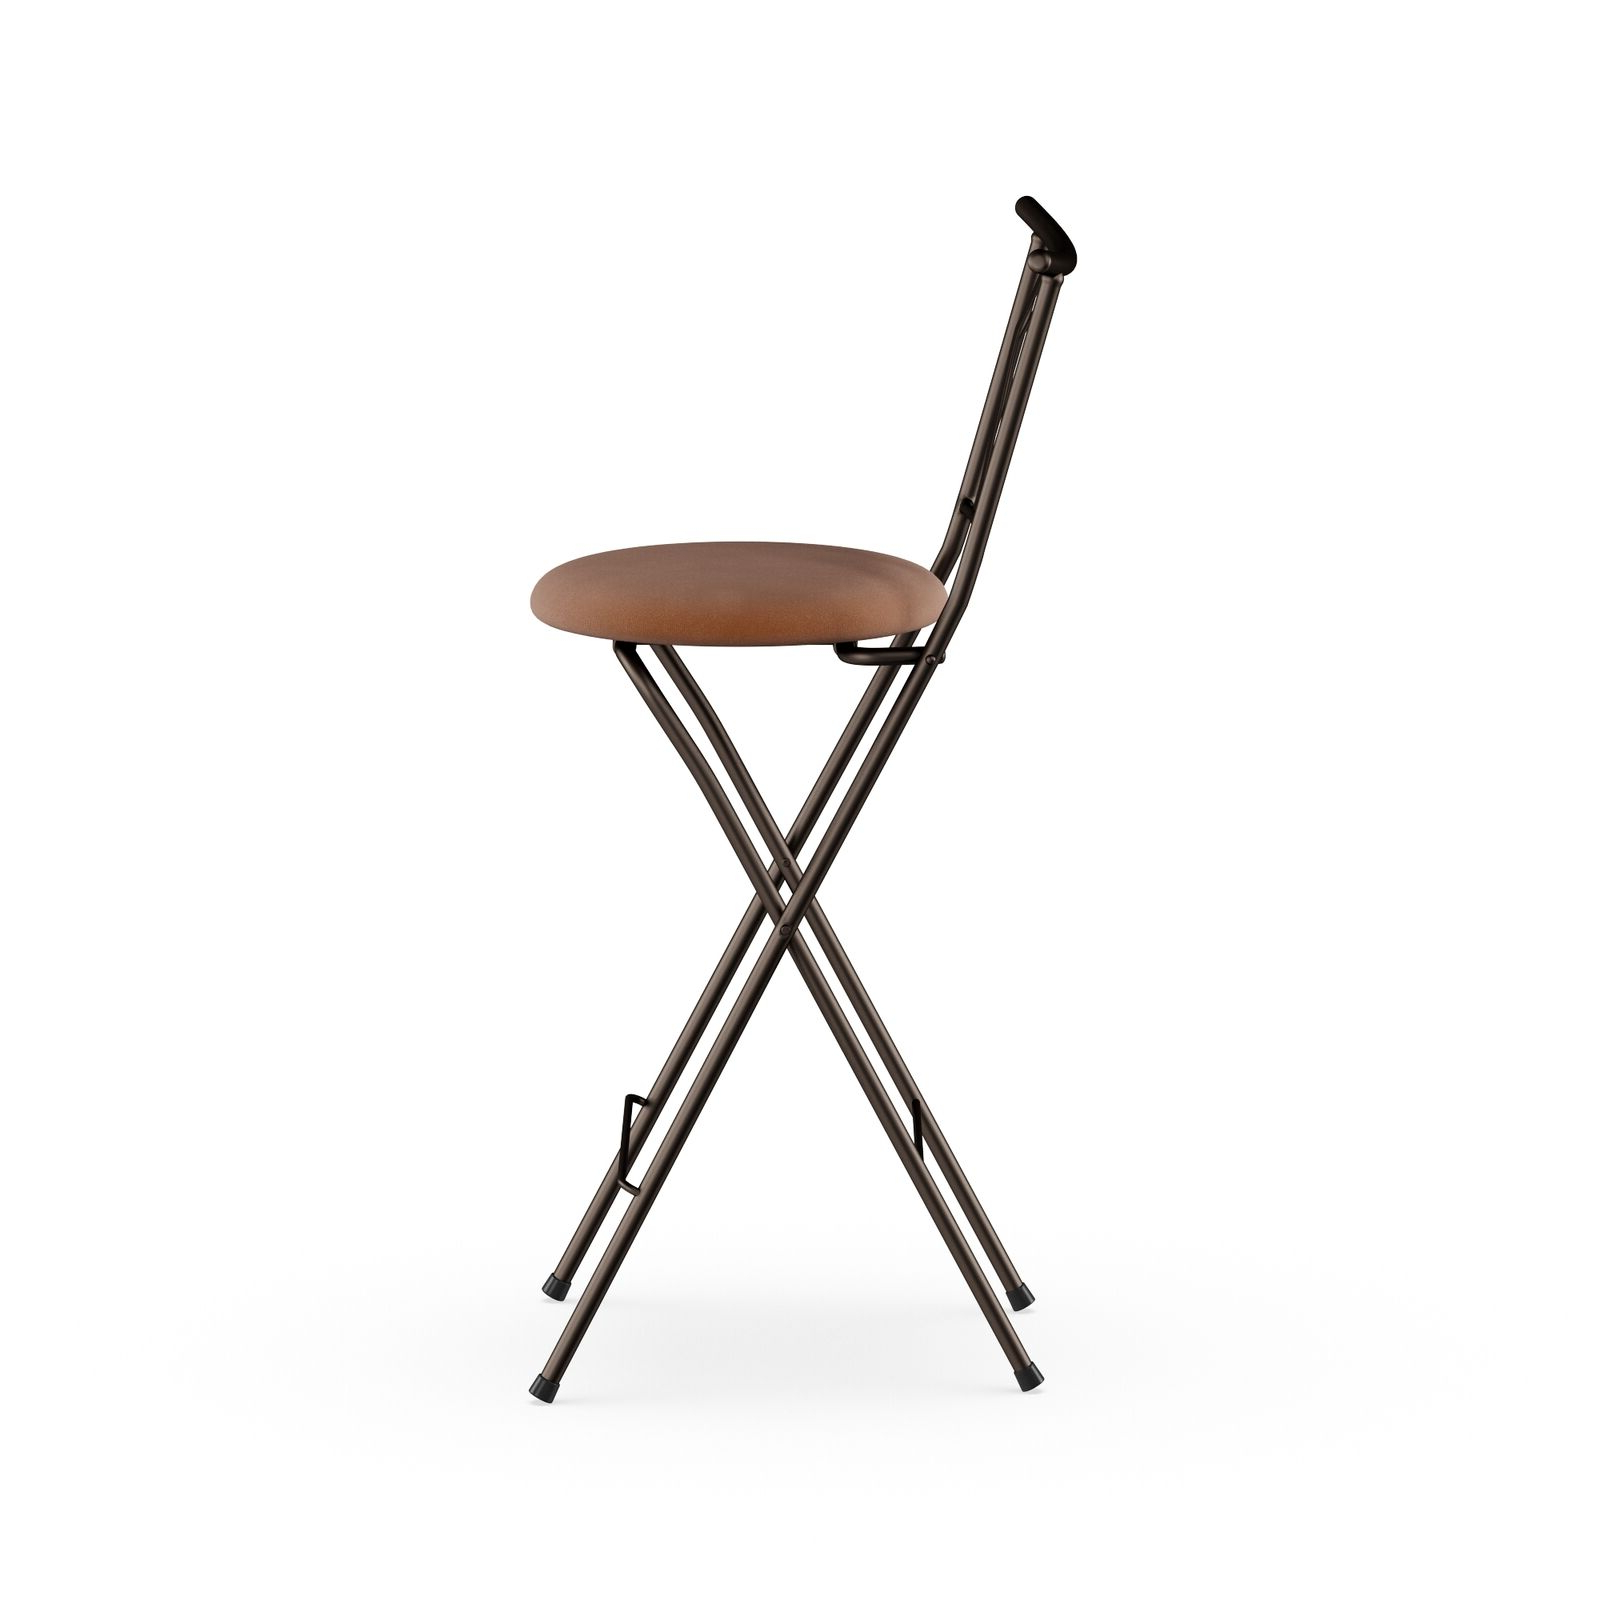 "Well Known Mainstays Slat Back Folding 30"" Bronze Bar Stool Multiple Colors Inside Tillia Ceramic Garden Stools (View 22 of 30)"